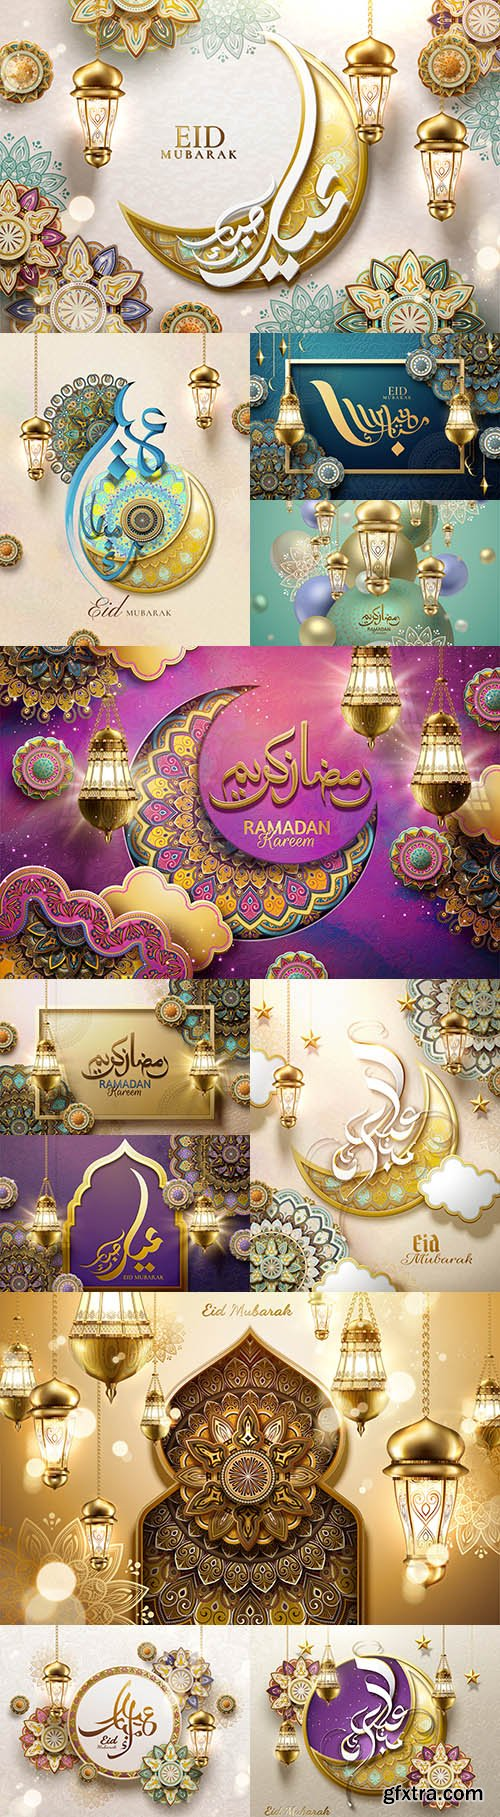 Ramadan Kareem banner with mosque and lantern background 2